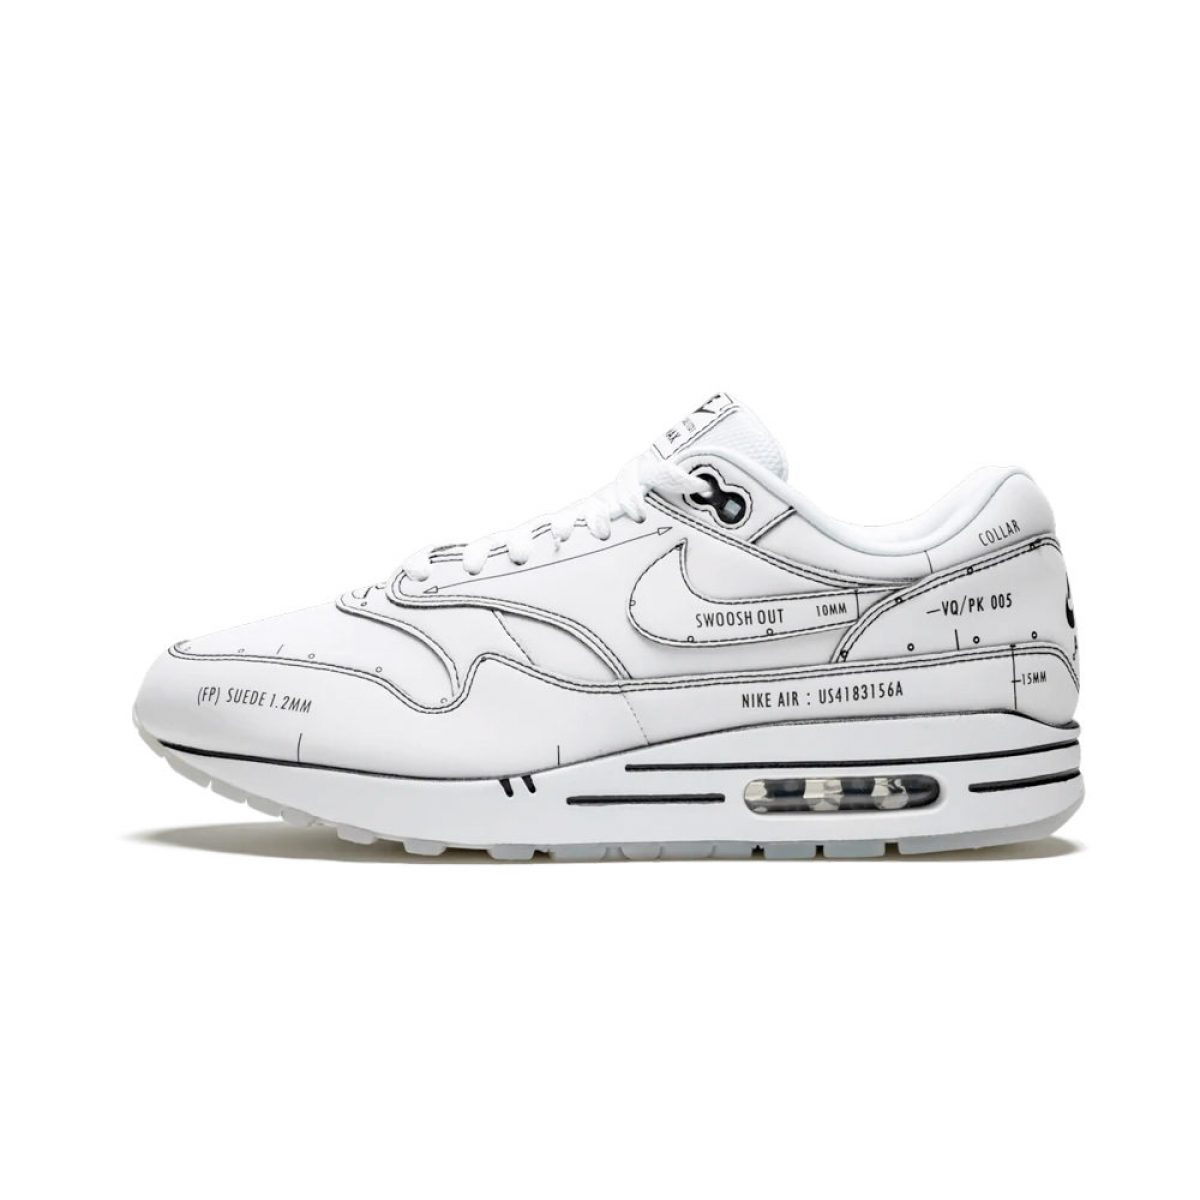 Nike Air Max 1 Tinker Schematic